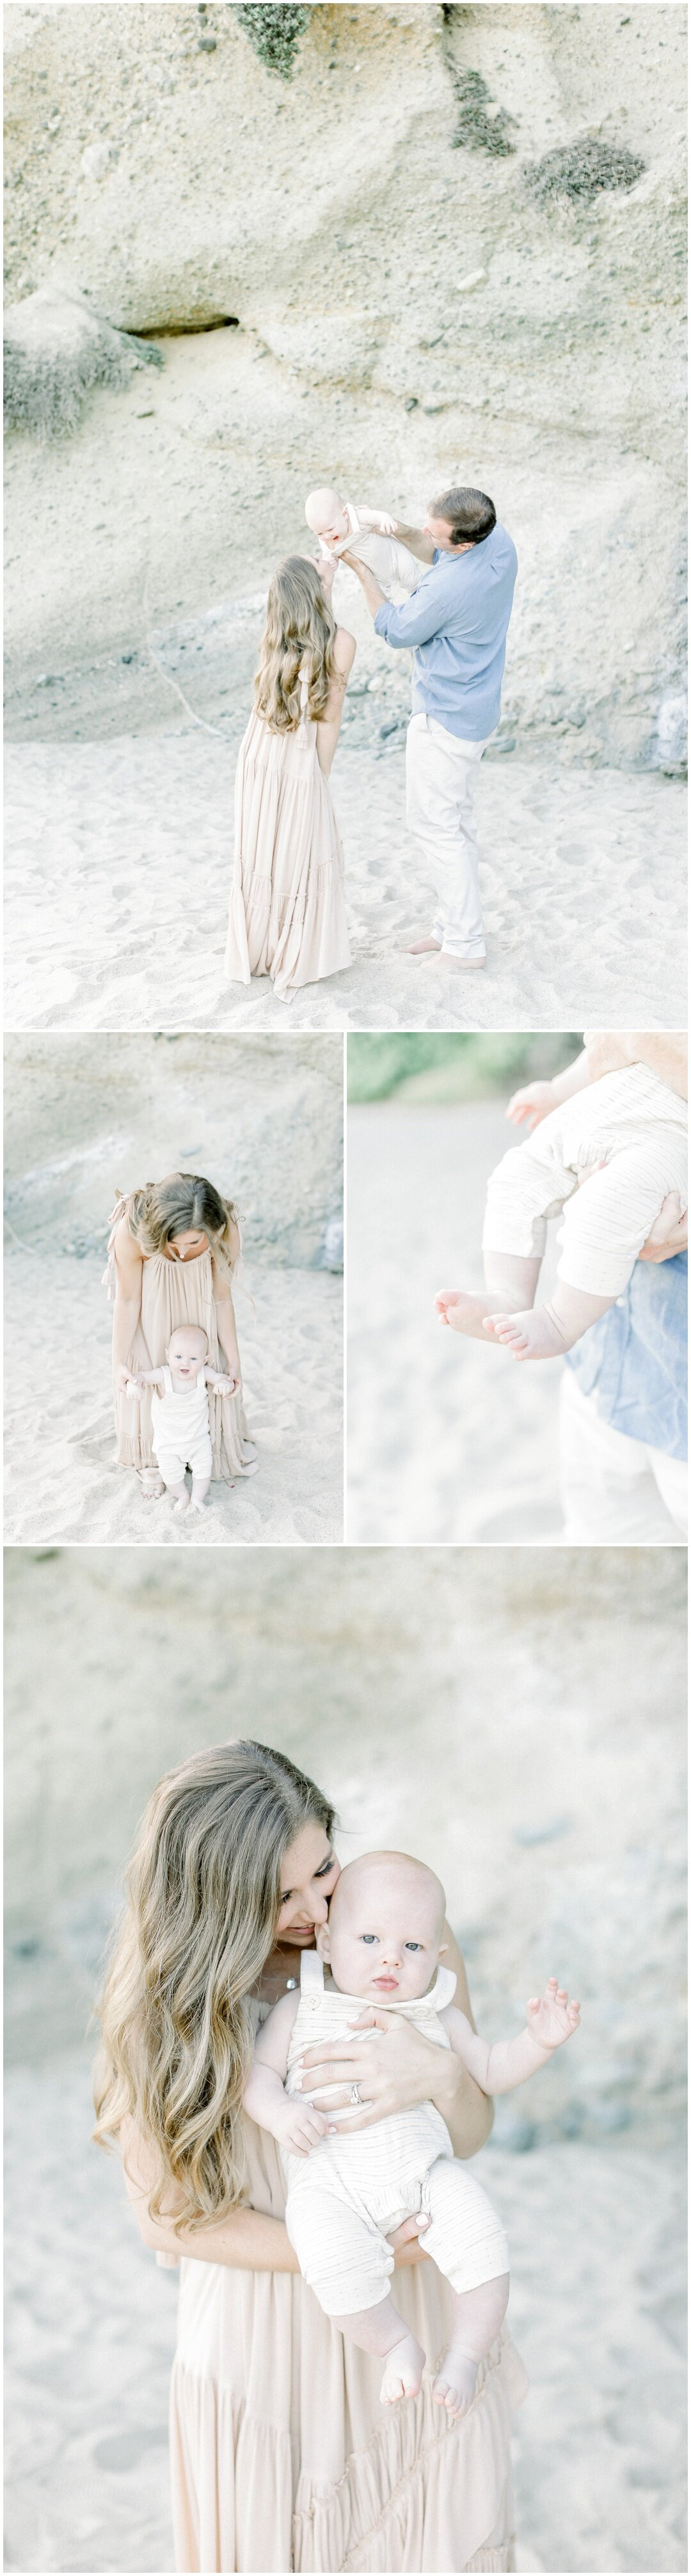 Newport+Beach+Newborn+Maternity+Photographer+Orange+County+Family+Photographer+Cori+Kleckner+Photography+Forgatch+Family+Matt+Kelley+Jack+Forgatch+_4414.jpg